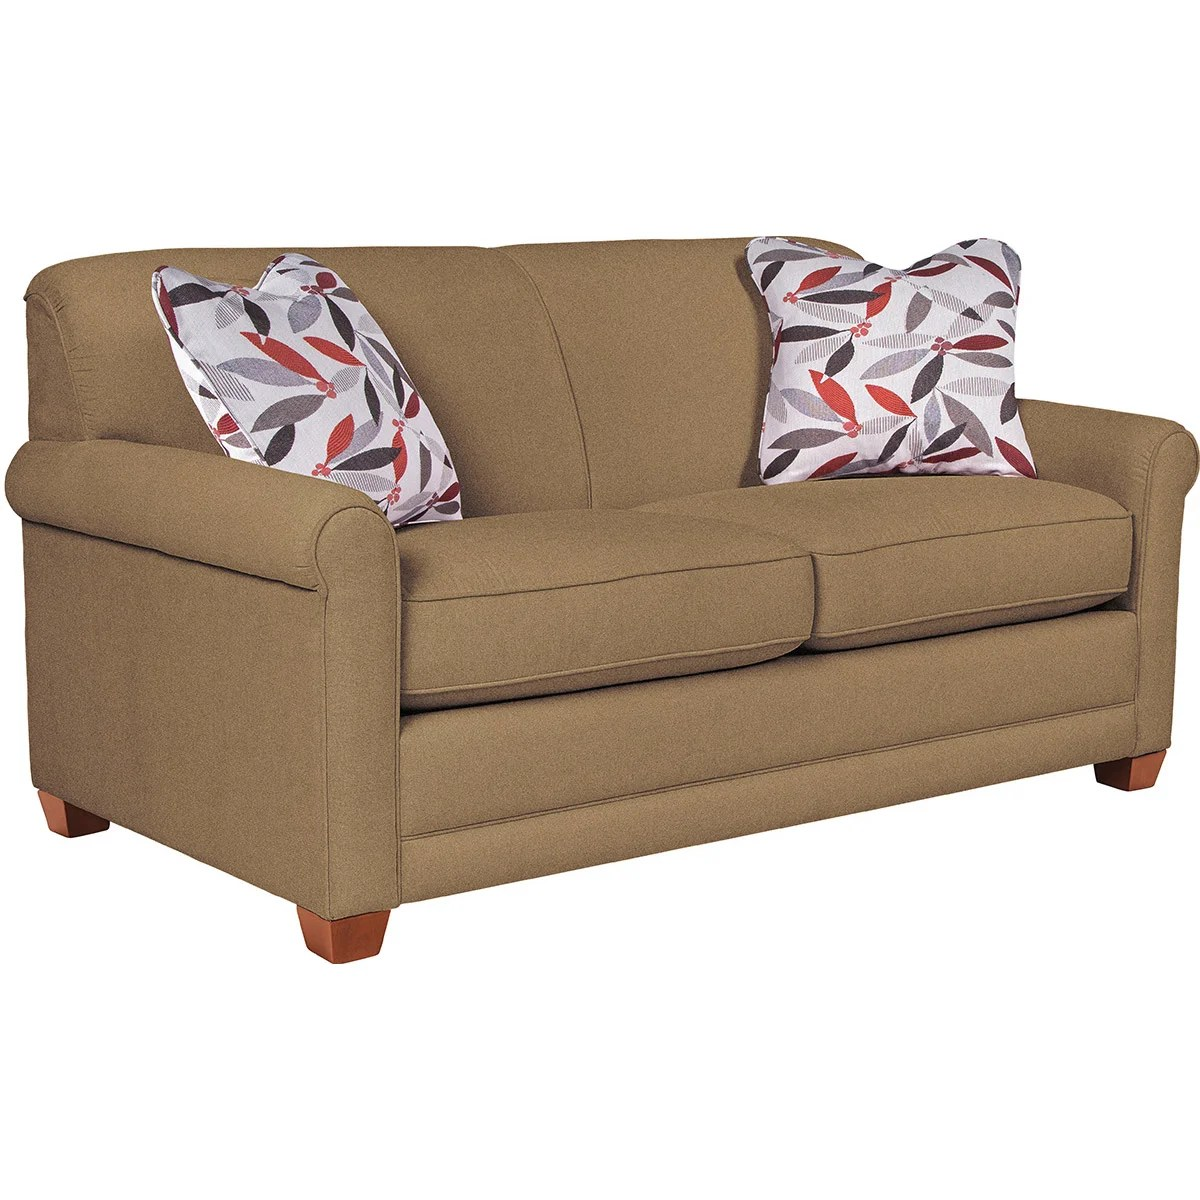 apartment size sectional sofa bed loveseat canada amanda premier